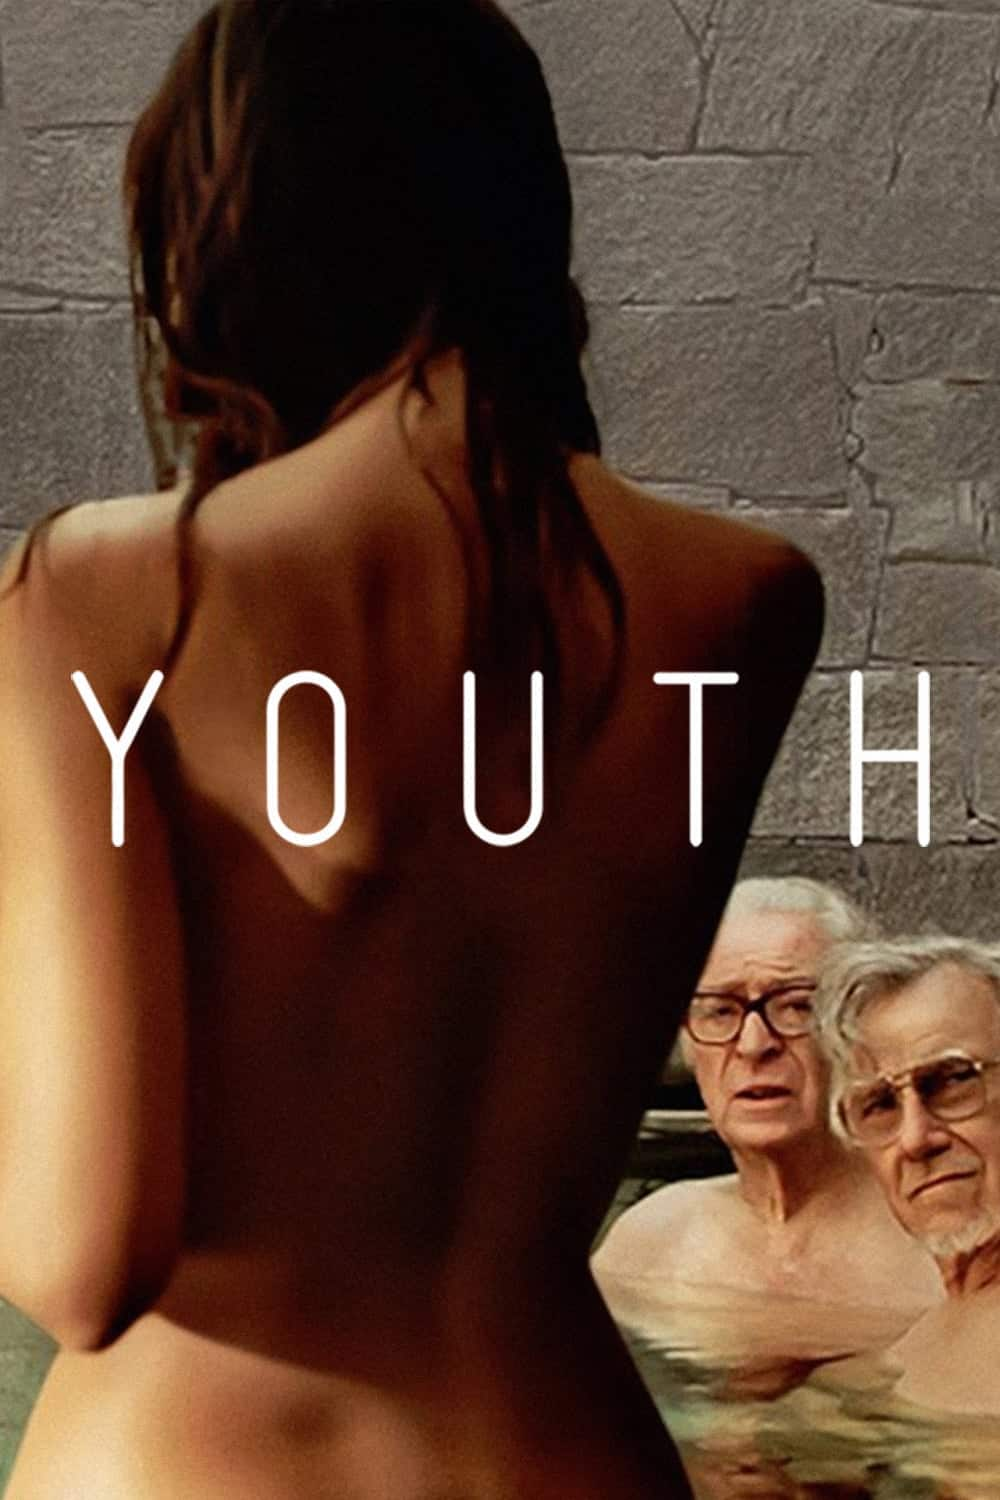 Youth, 2015